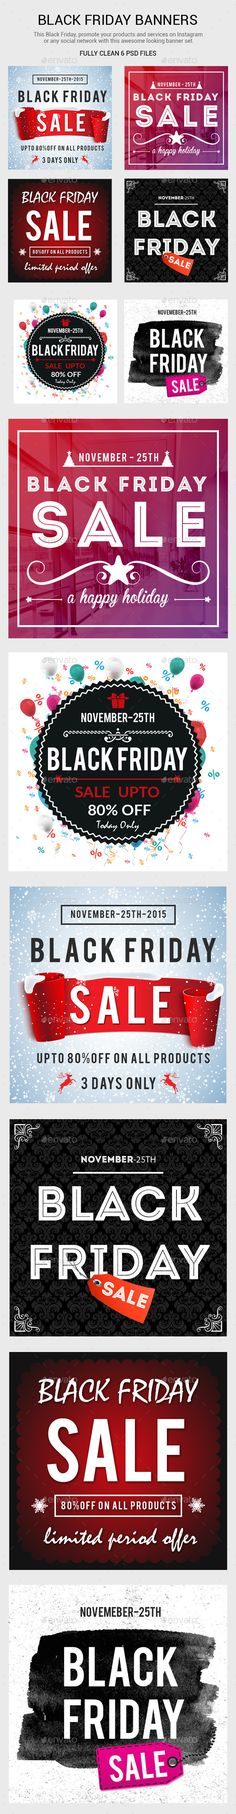 Black Friday Web Banners Template PSD #design #ads Download: http://graphicriver.net/item/black-friday-banners/13684177?ref=ksioks